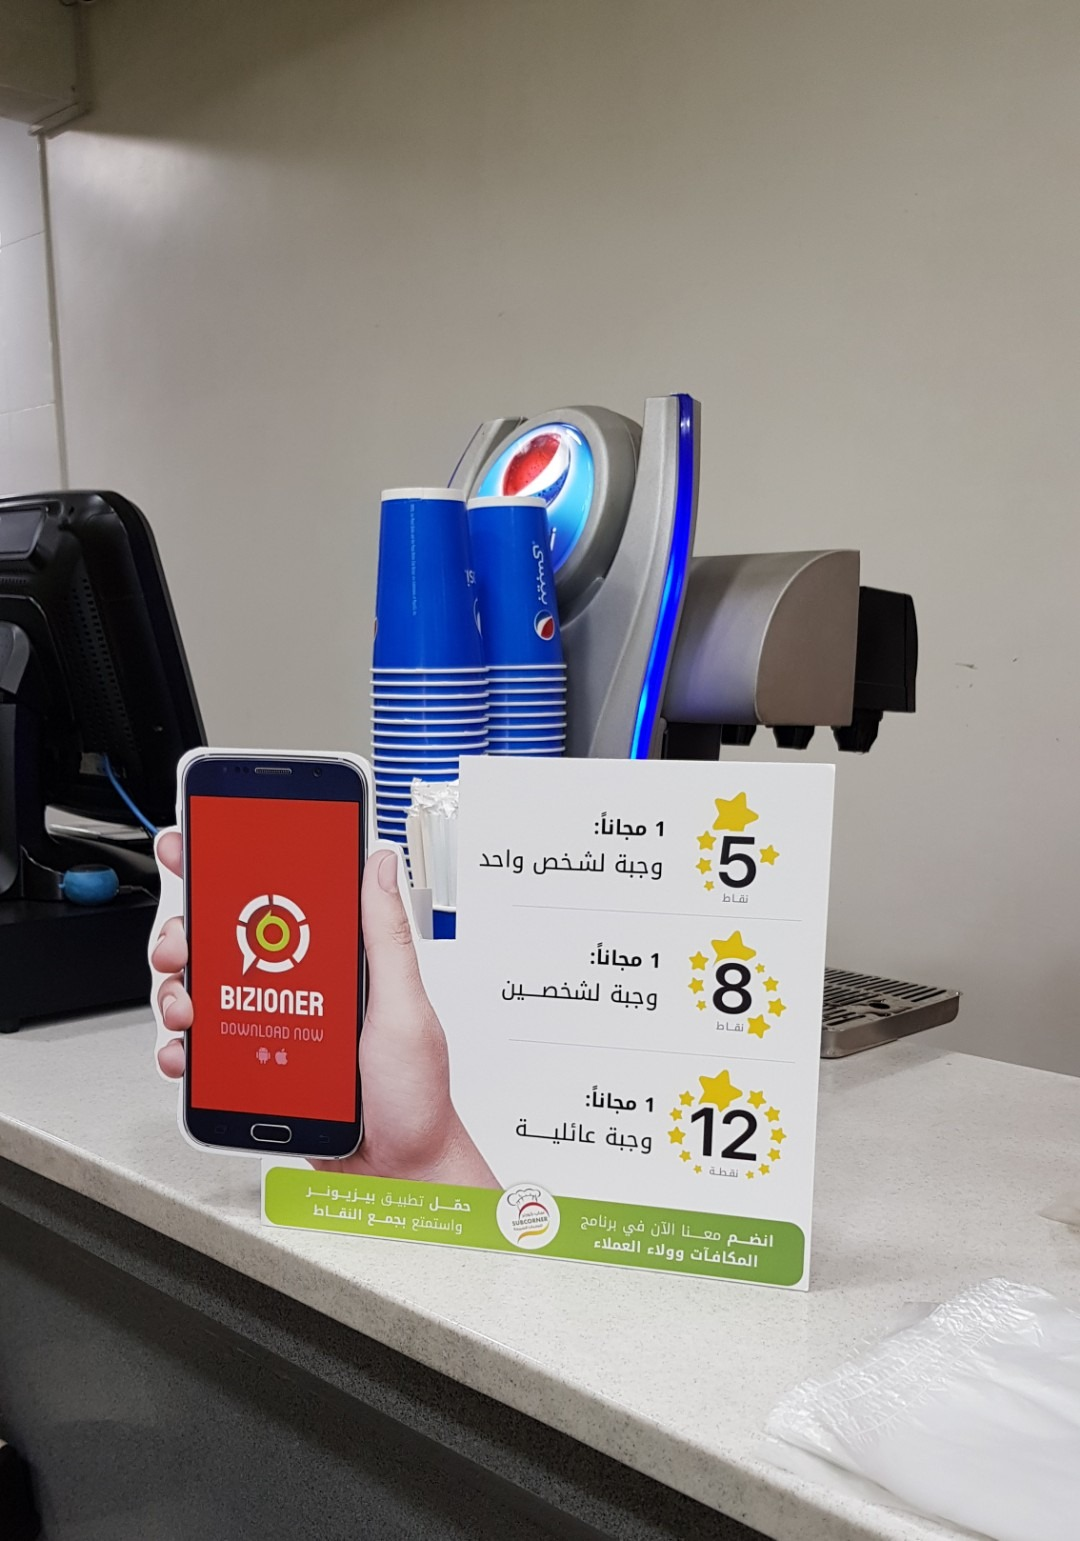 We love our loyal customers 😍  Don't forget to ask your loyalty point from our staff on each order (delivery, takeaway or dine-in) @ Sub Corner - Bahrain